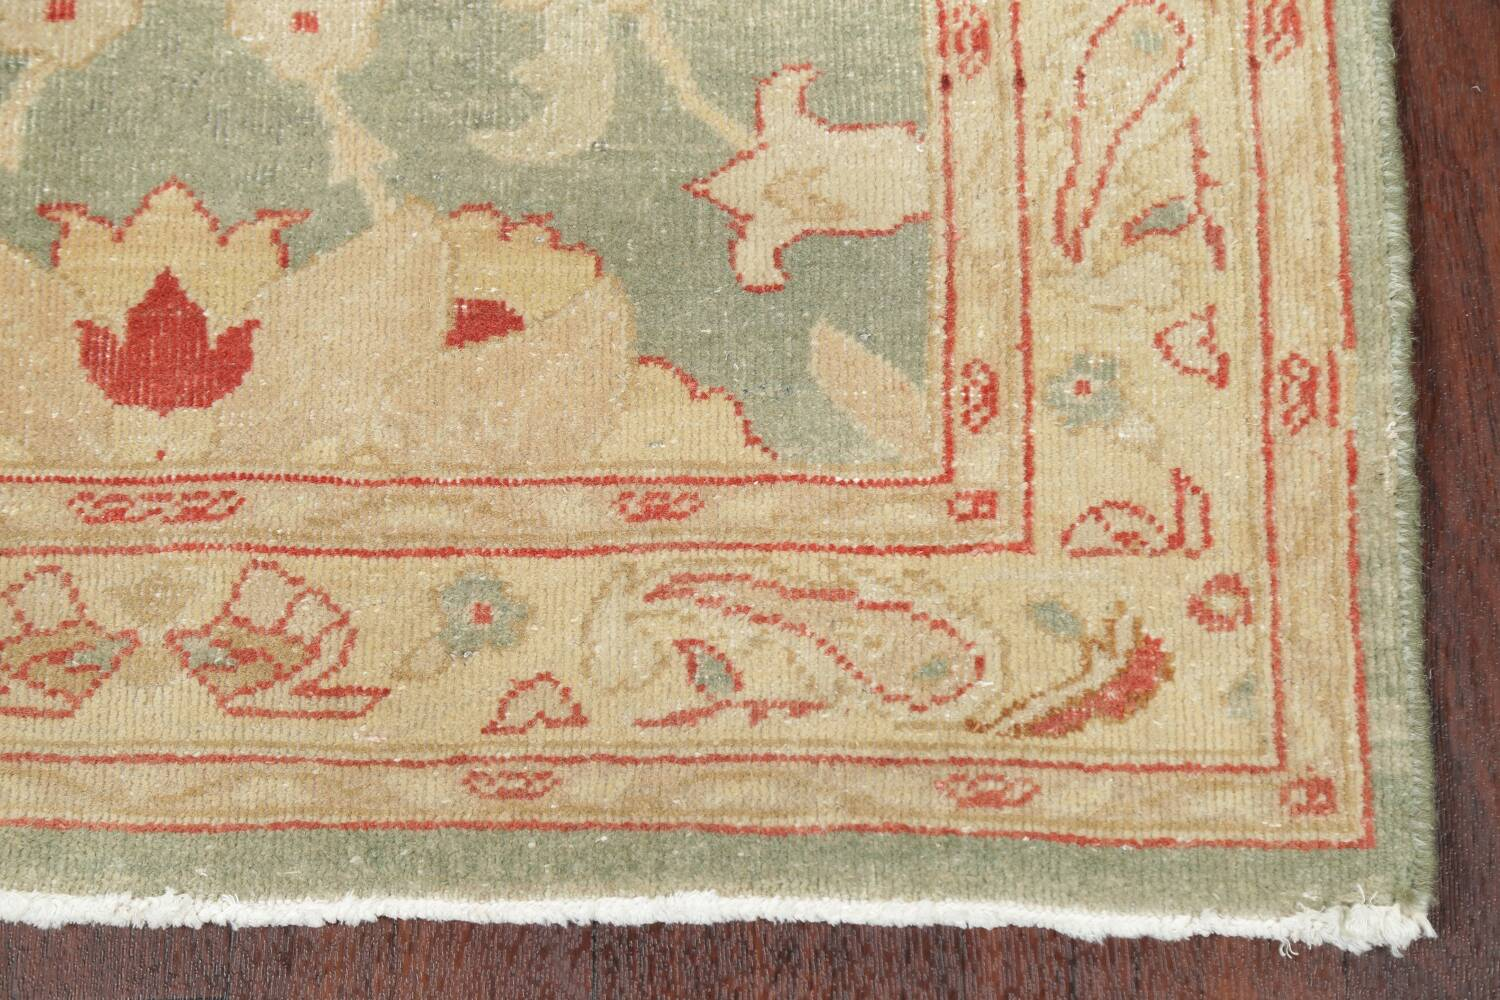 Muted Green Floral Oushak Egyptian Runner Rug 2x12 image 5